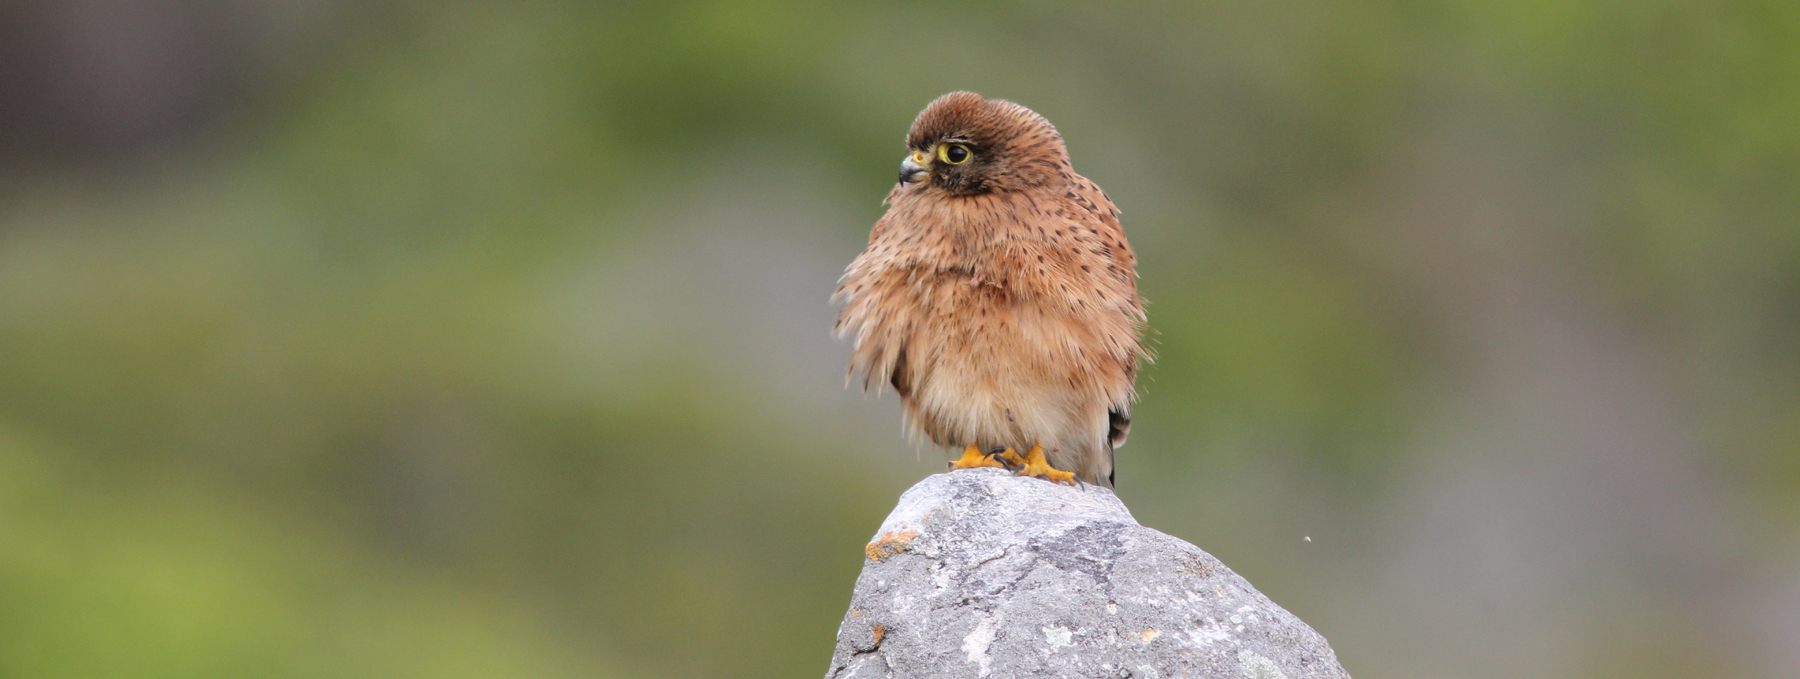 SliderRock-Kestrel-slider-220313_2389